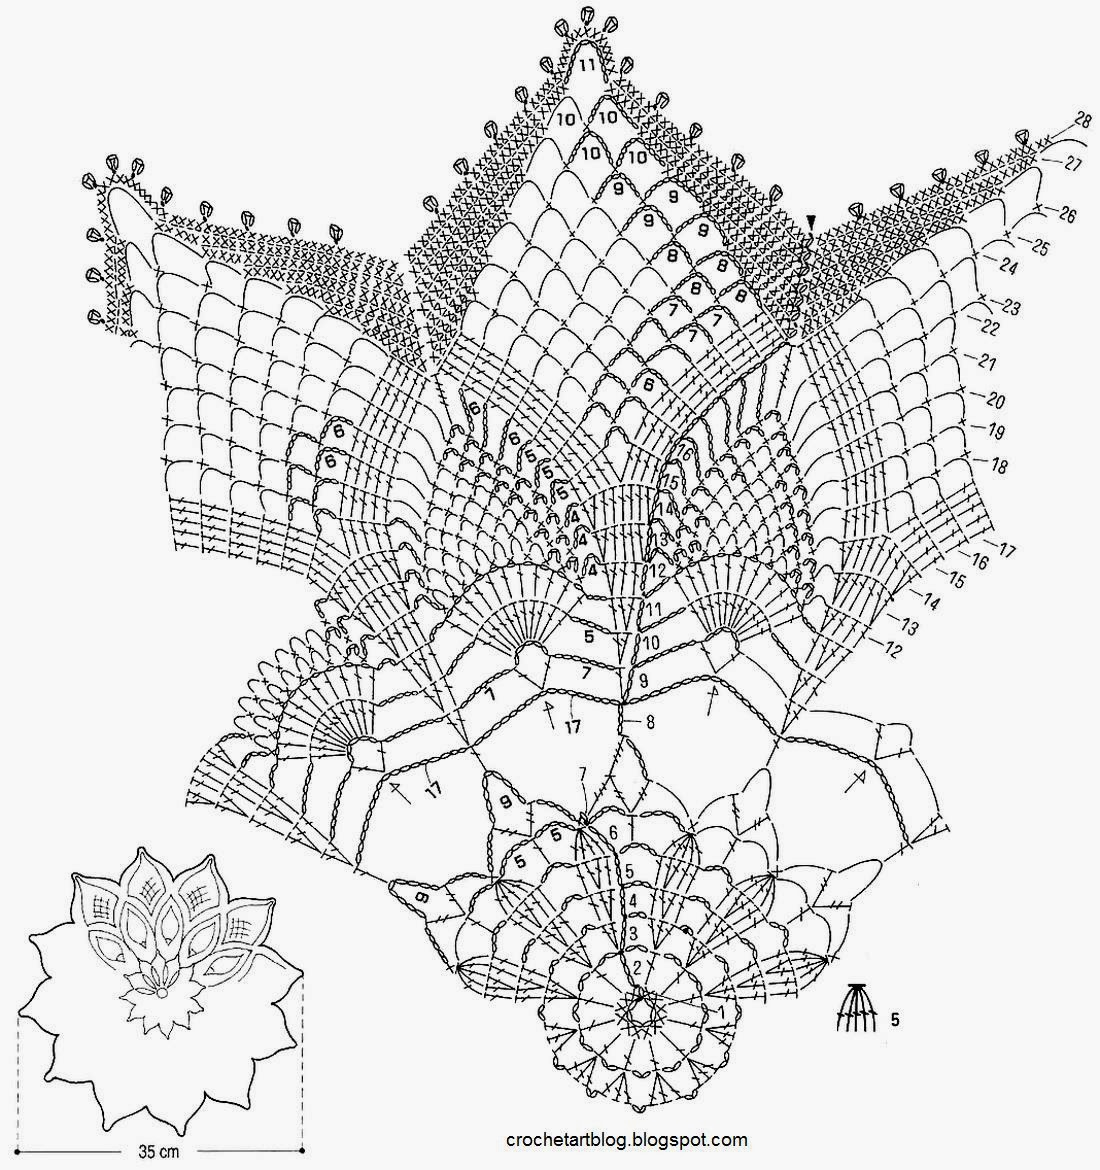 crochet doily patterns with diagram standard cat5 wiring the best free drawing images download from 50 drawings 1100x1170 art pattern of gorgeous